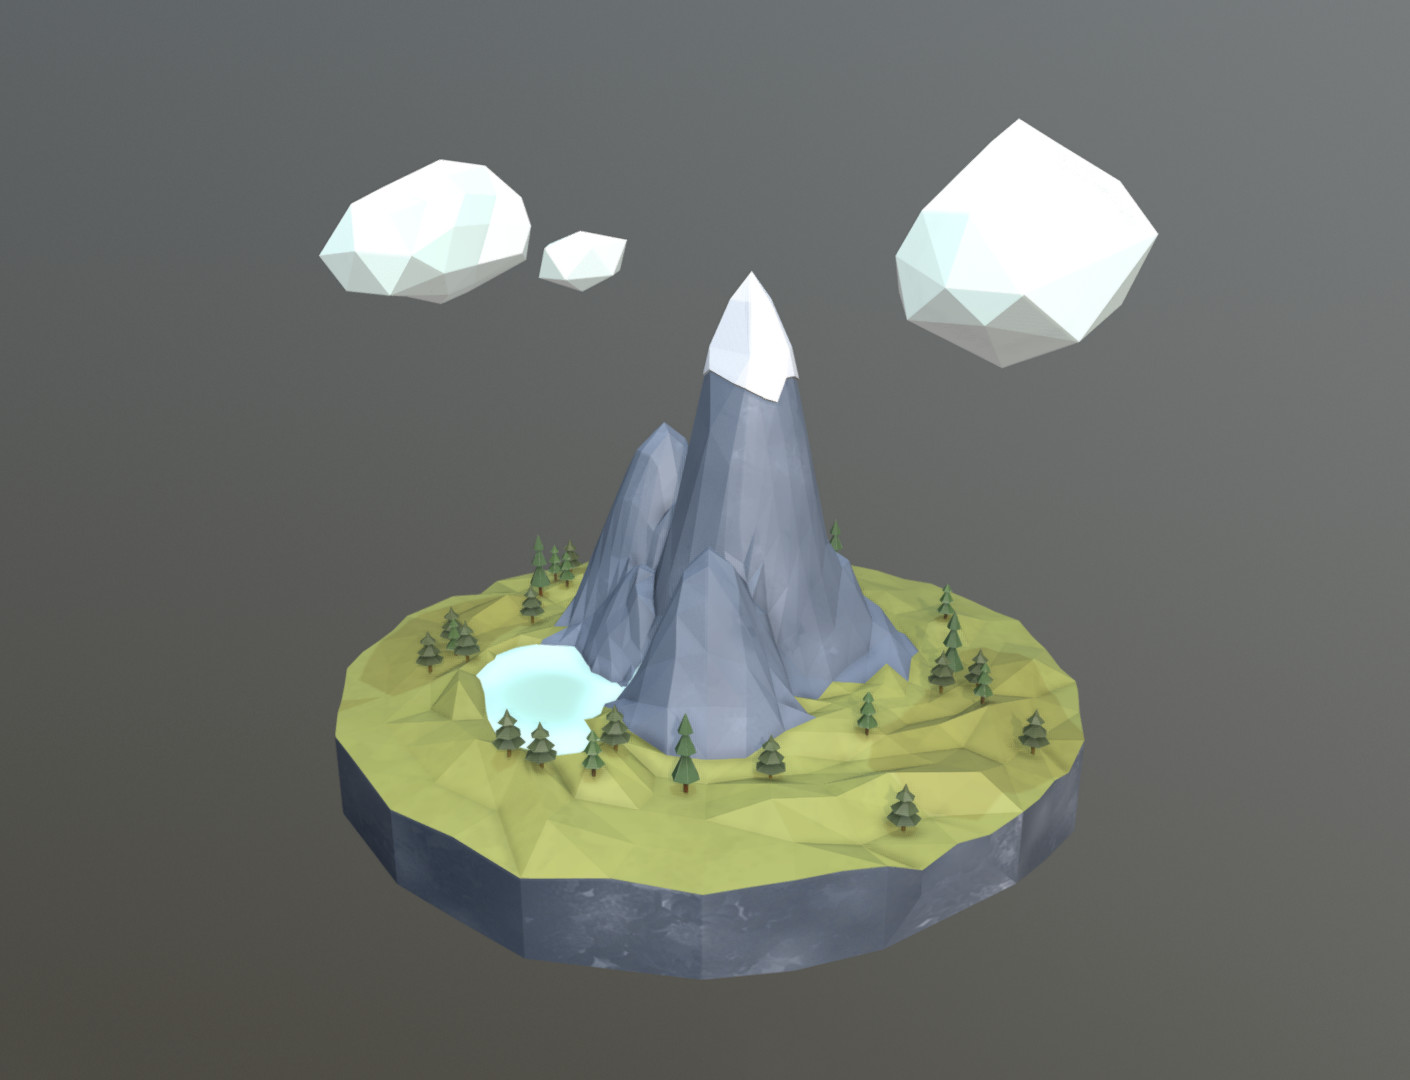 Screenshot of the model inside Sketchfab.